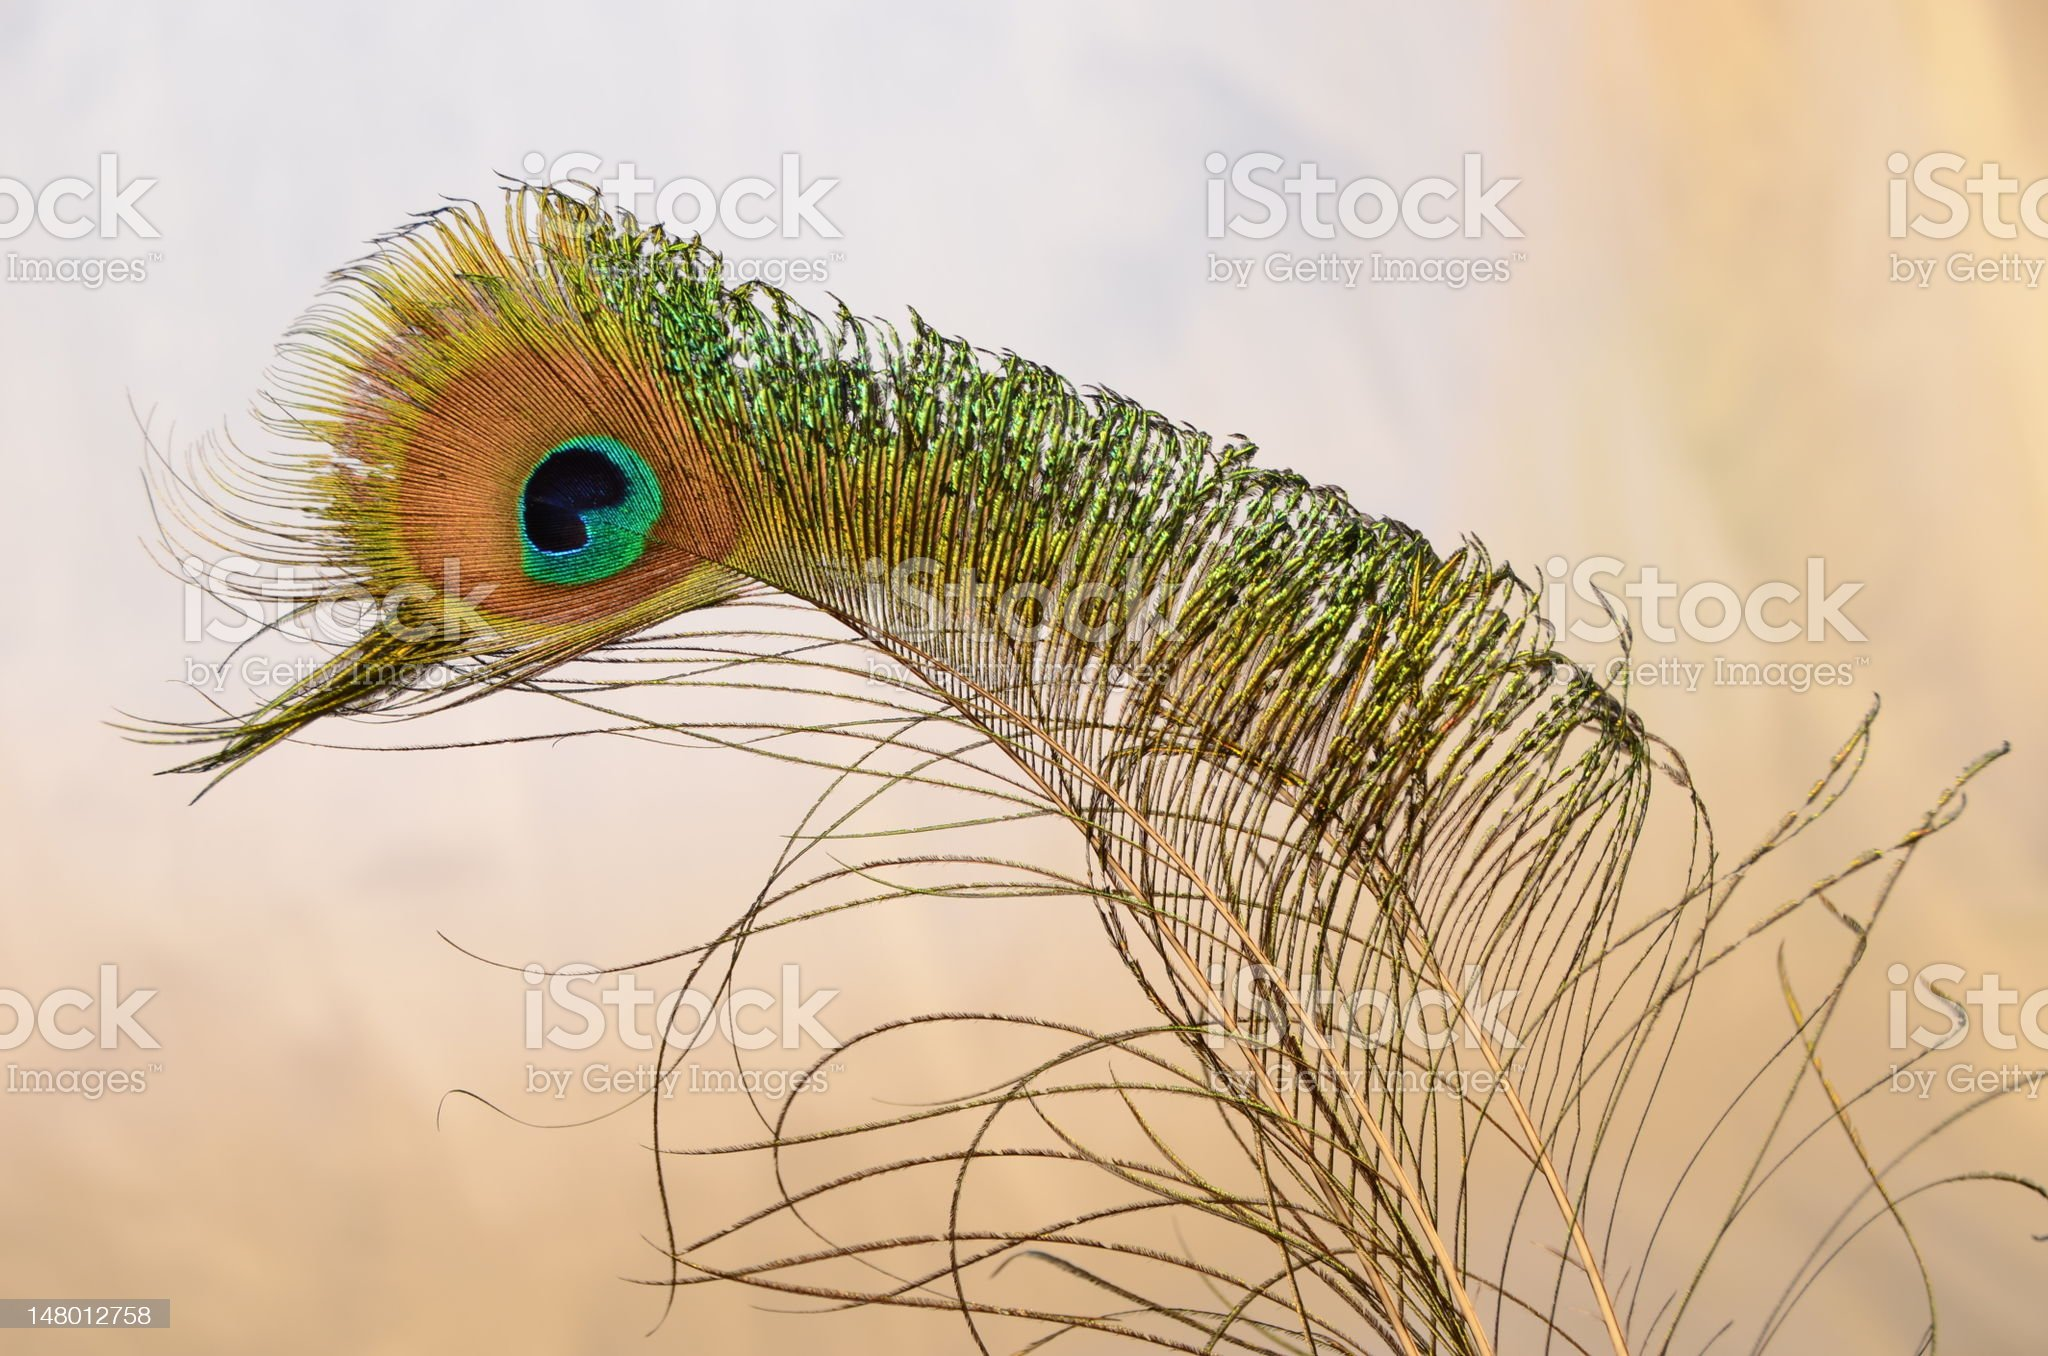 Colourful Peacock - Feathers Isolated on a Light Background royalty-free stock photo